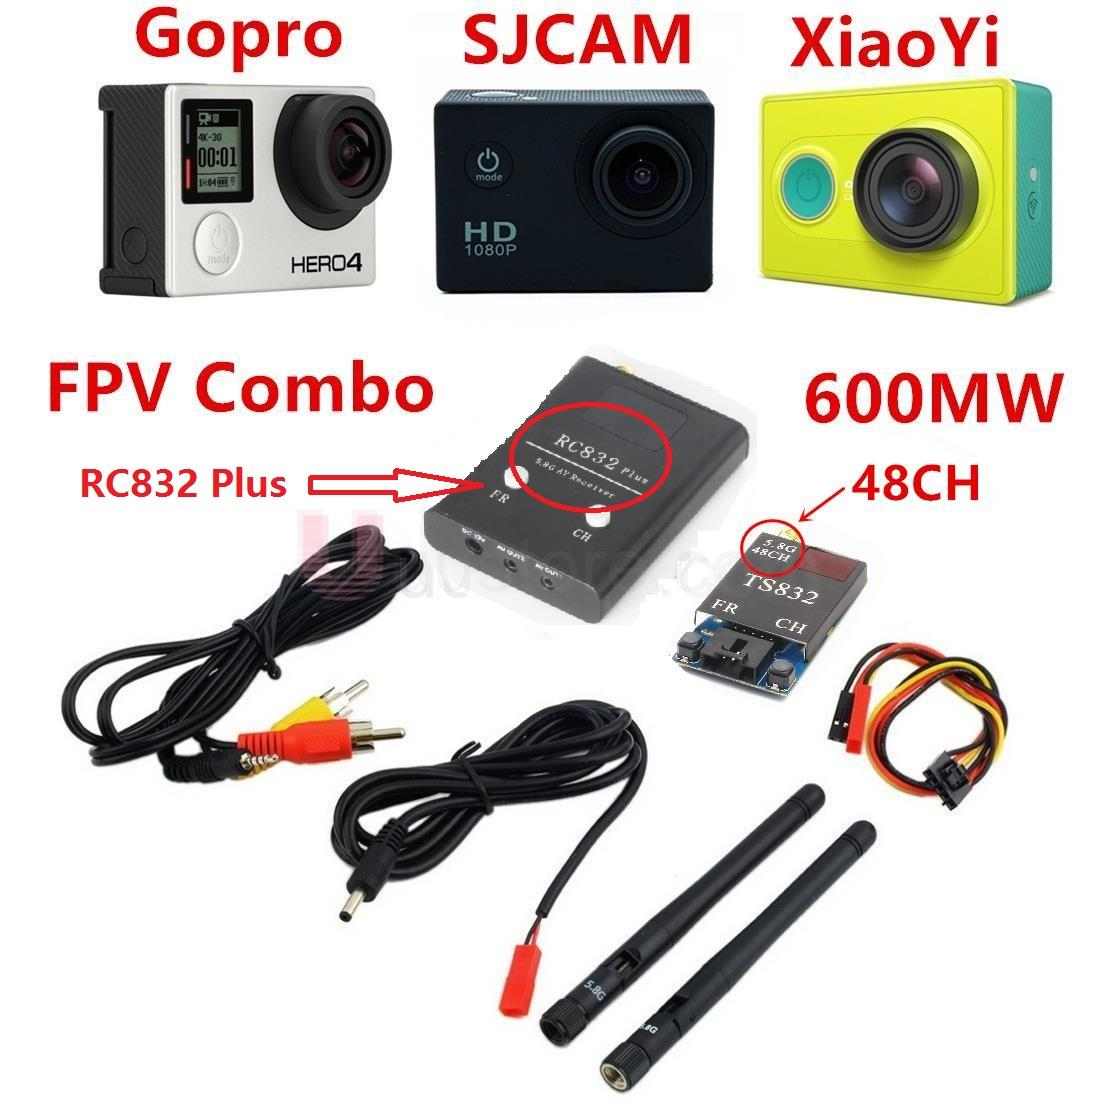 FPV System Boscam 5.8Ghz 600mW 48CH Transmitter TS832 &Receiver RC832 Plus FPV System For QAV210 QAV250 Drone Quadcopter Walkera